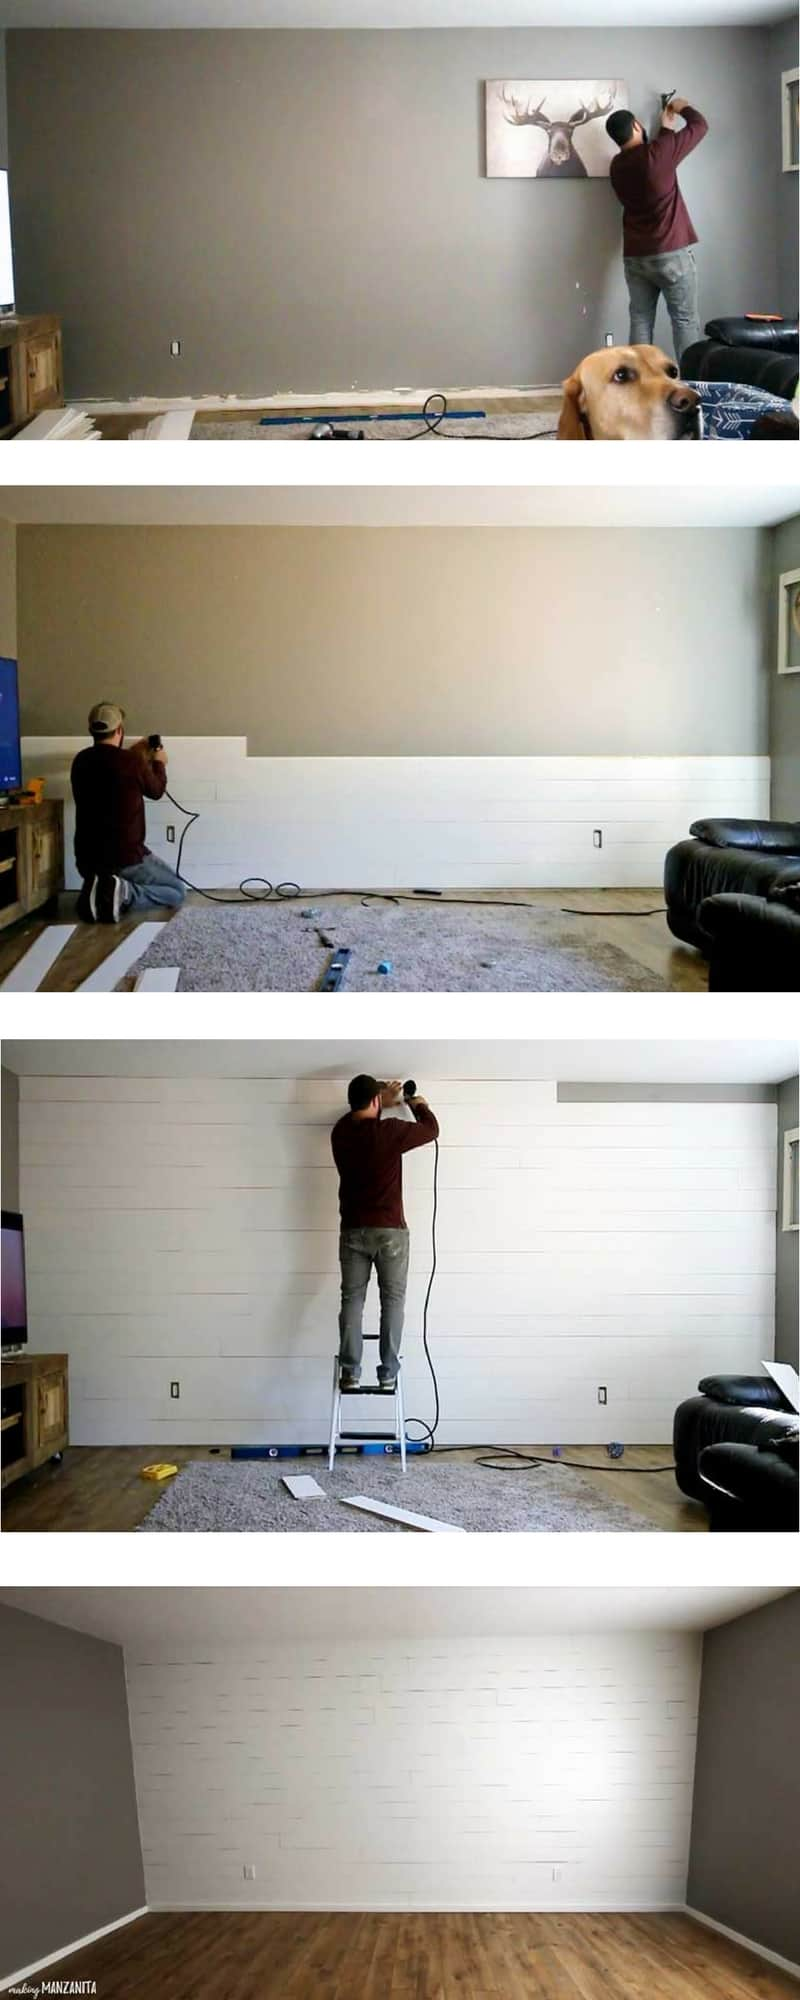 a tall image divided into 4 sections vertically, top showing the process of removing items from a wall in preparation, second from the top showing a shiplap wall halfway installed, second from the bottom showing a mostly finished shiplap wall getting the top row installed, bottom showing the finished shiplap wall